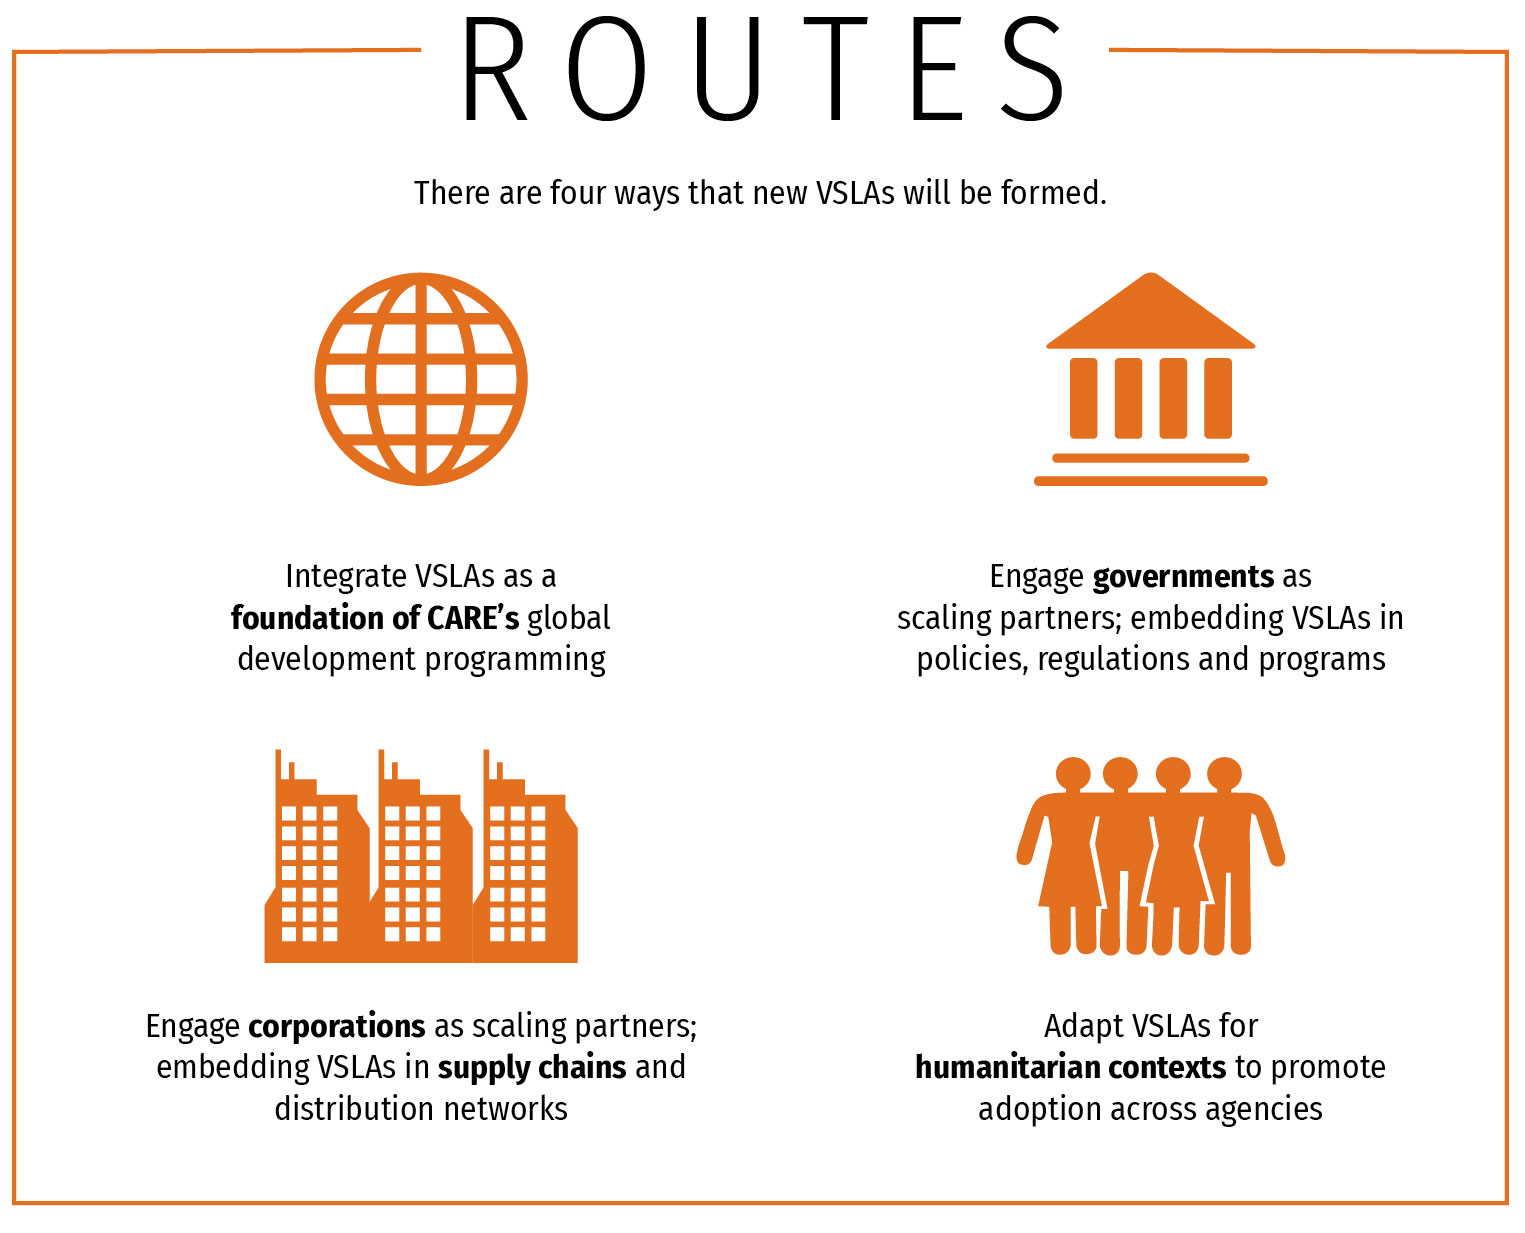 Infographic: There are 4 ways new VSLAs will be formed.